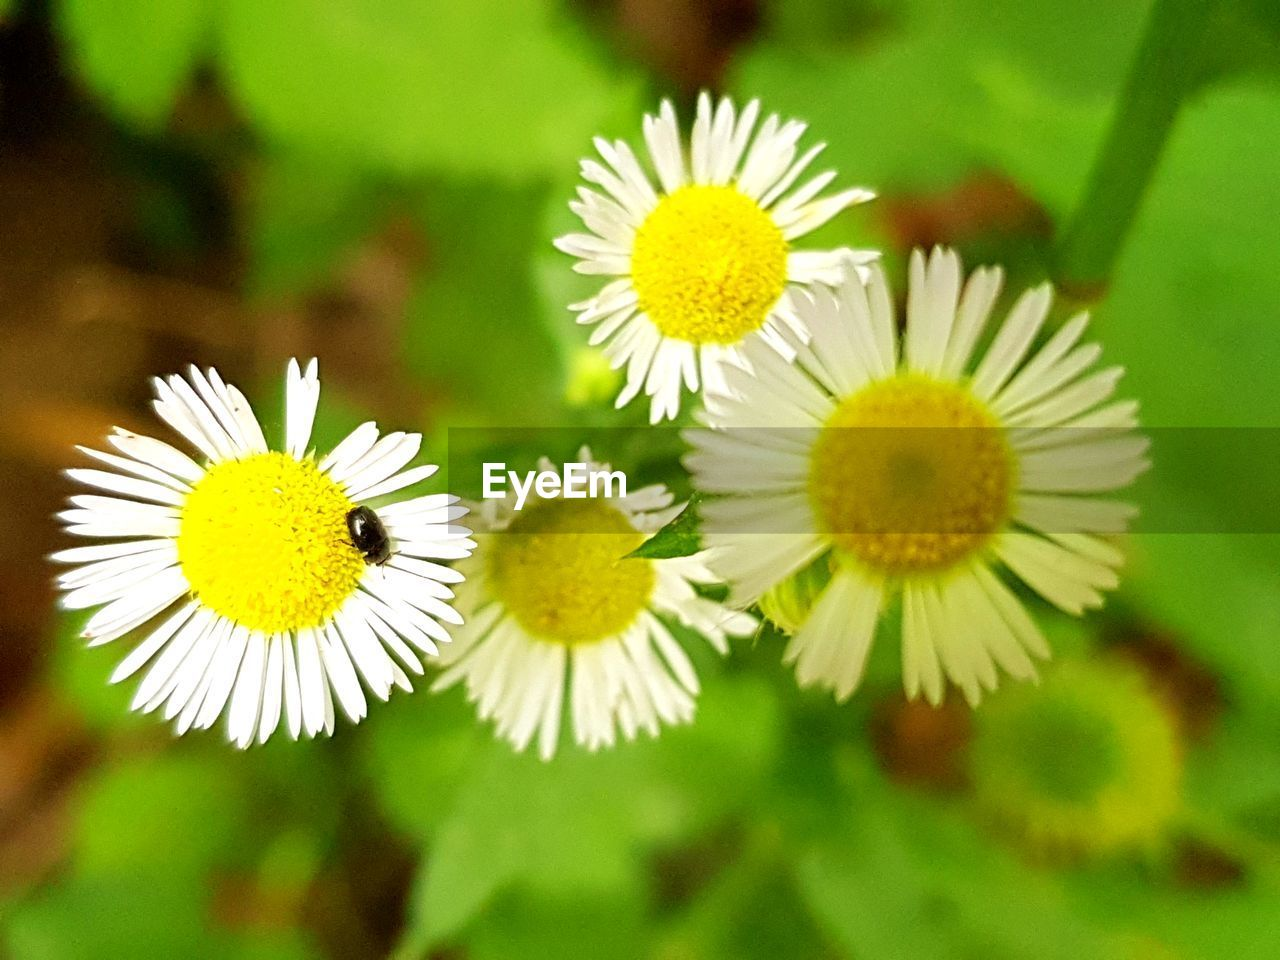 flower, flowering plant, plant, vulnerability, fragility, yellow, petal, flower head, freshness, beauty in nature, close-up, inflorescence, daisy, growth, animal themes, invertebrate, insect, pollen, white color, animal, no people, pollination